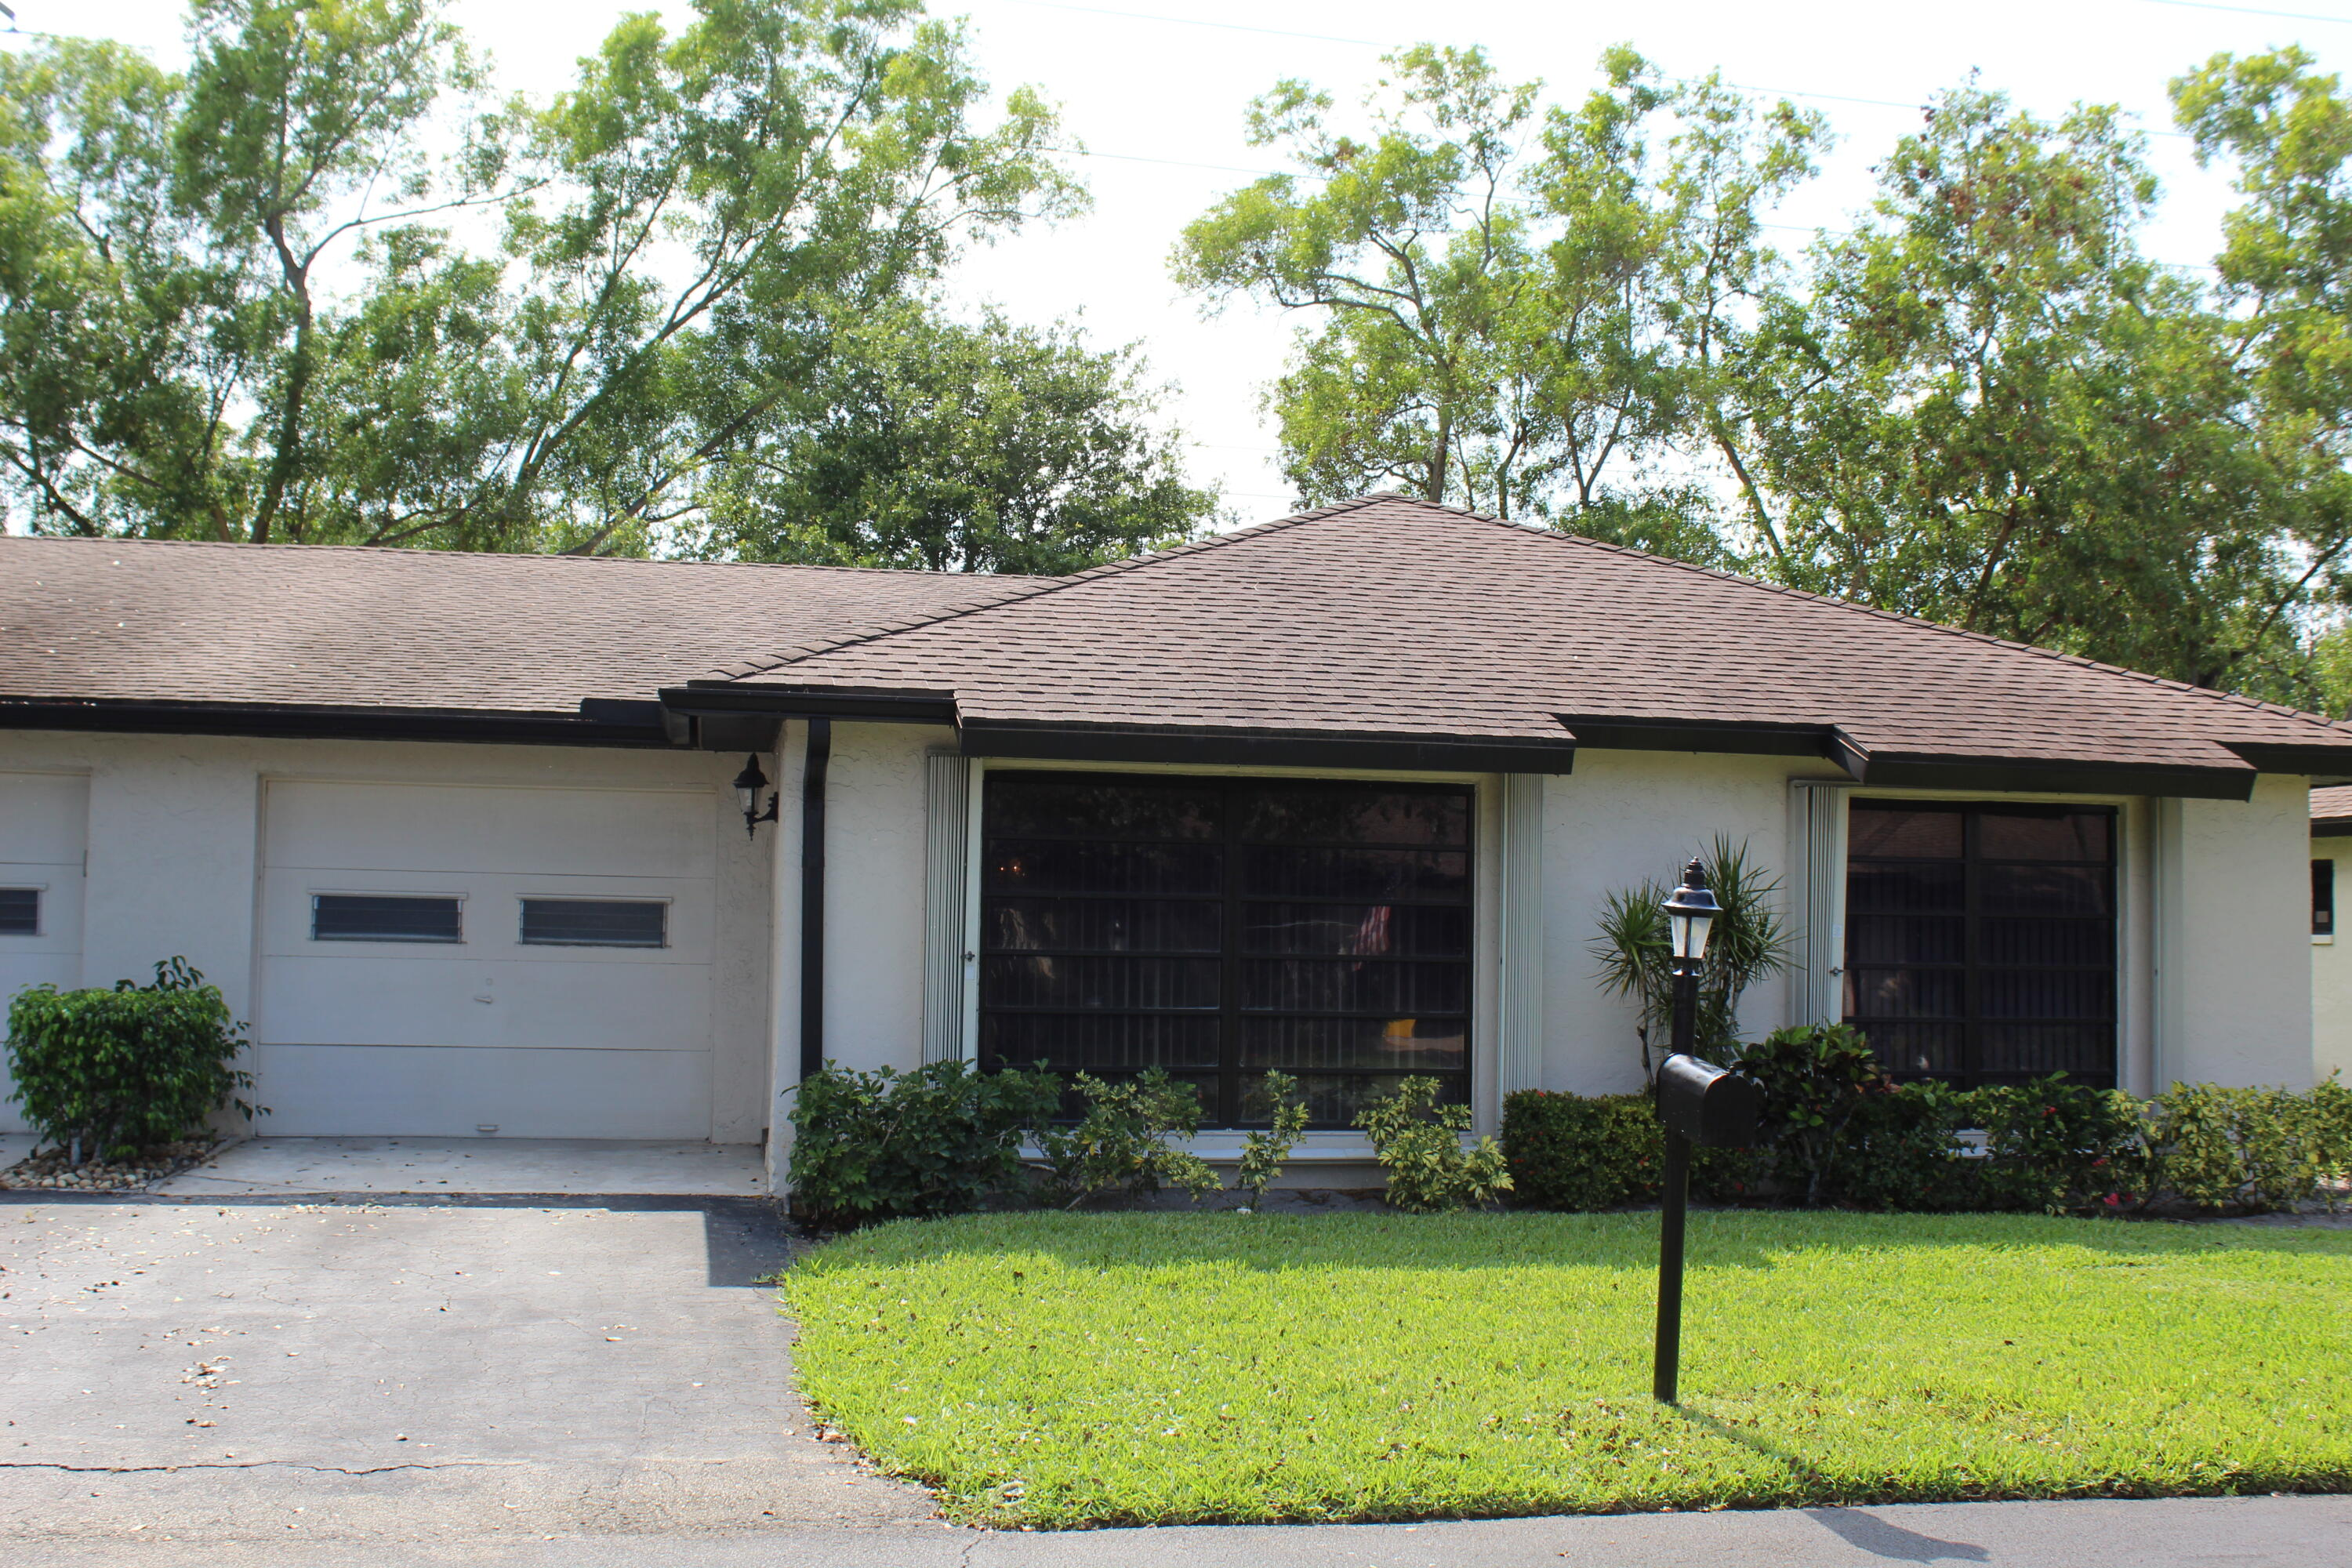 Home for sale in Greentree Villas Boynton Beach Florida